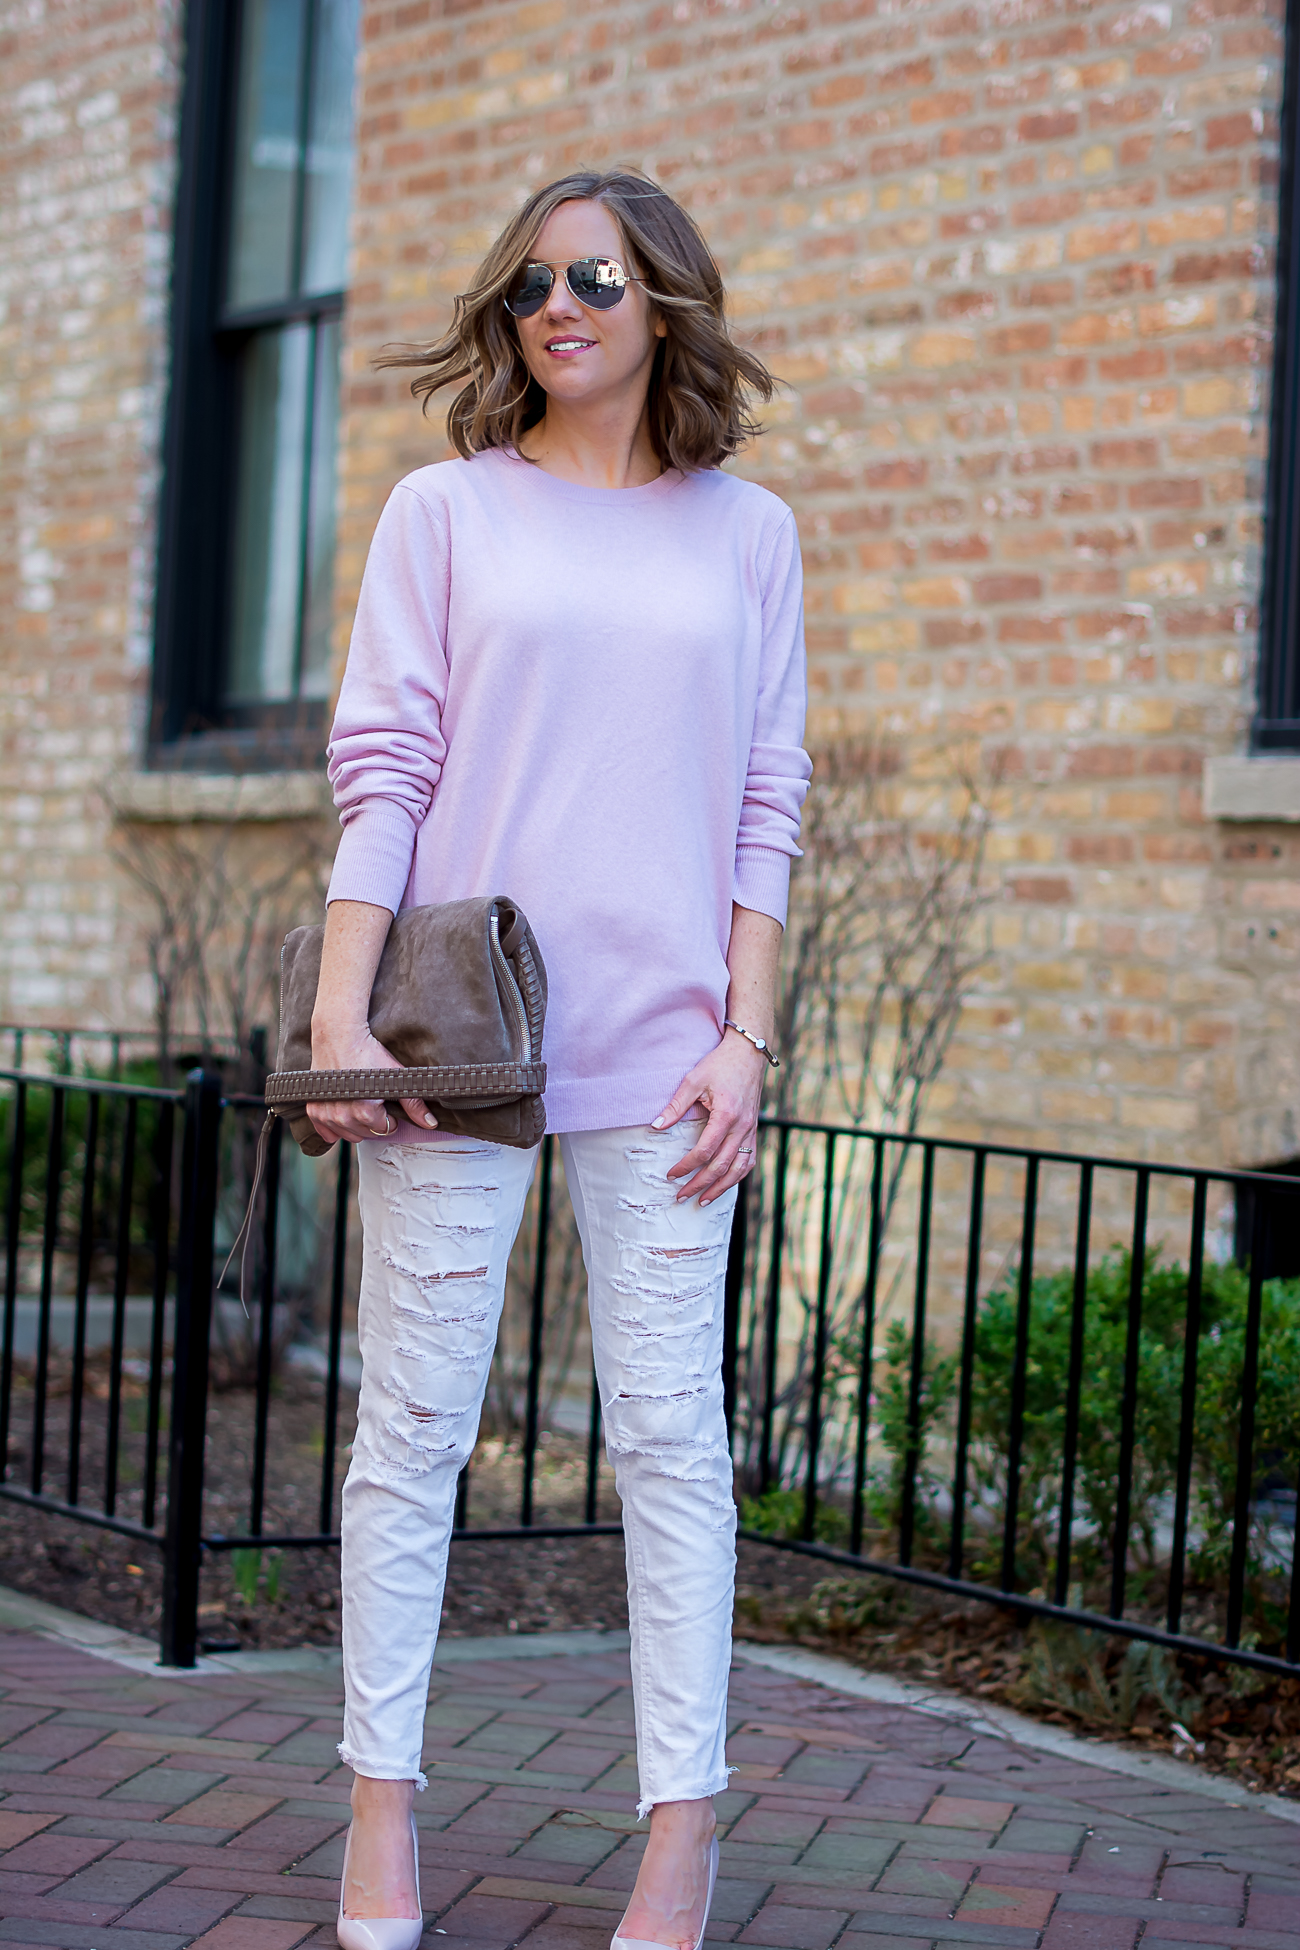 banana-republic-oversized-pink-wool-sweater-american-eagle-distressed-skiny-jeans-blush-heels-all-saints-convertible-clutch-simple-spring-pastels-24